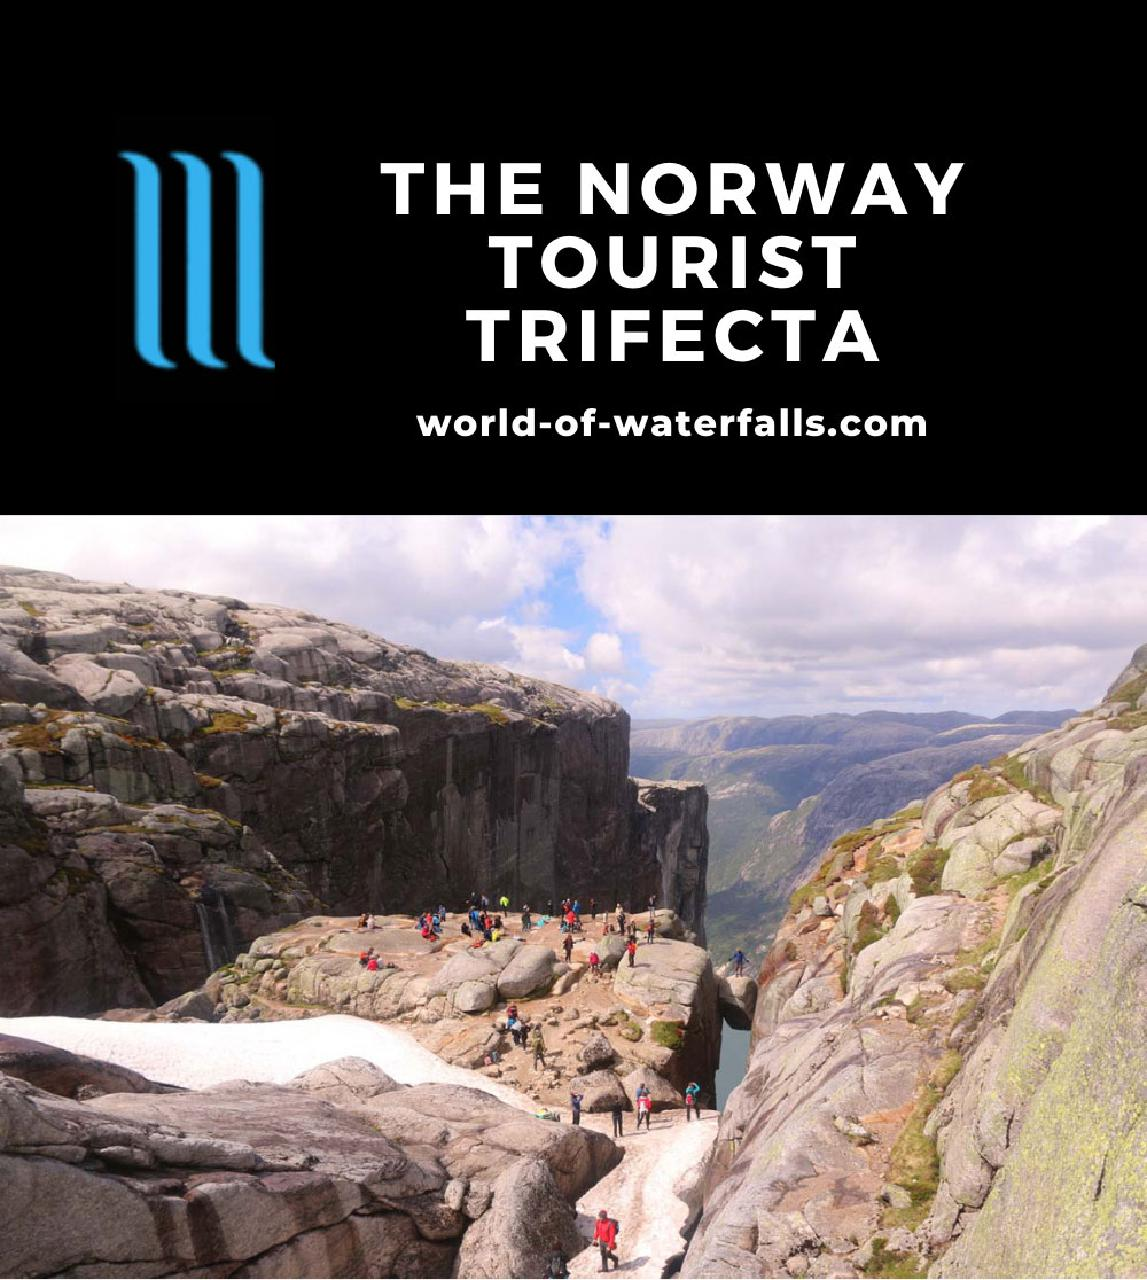 Kjeragbolten, which was one of the Norway Tourist Trifecta of Preikestolen, Kjerag, and Trolltunga